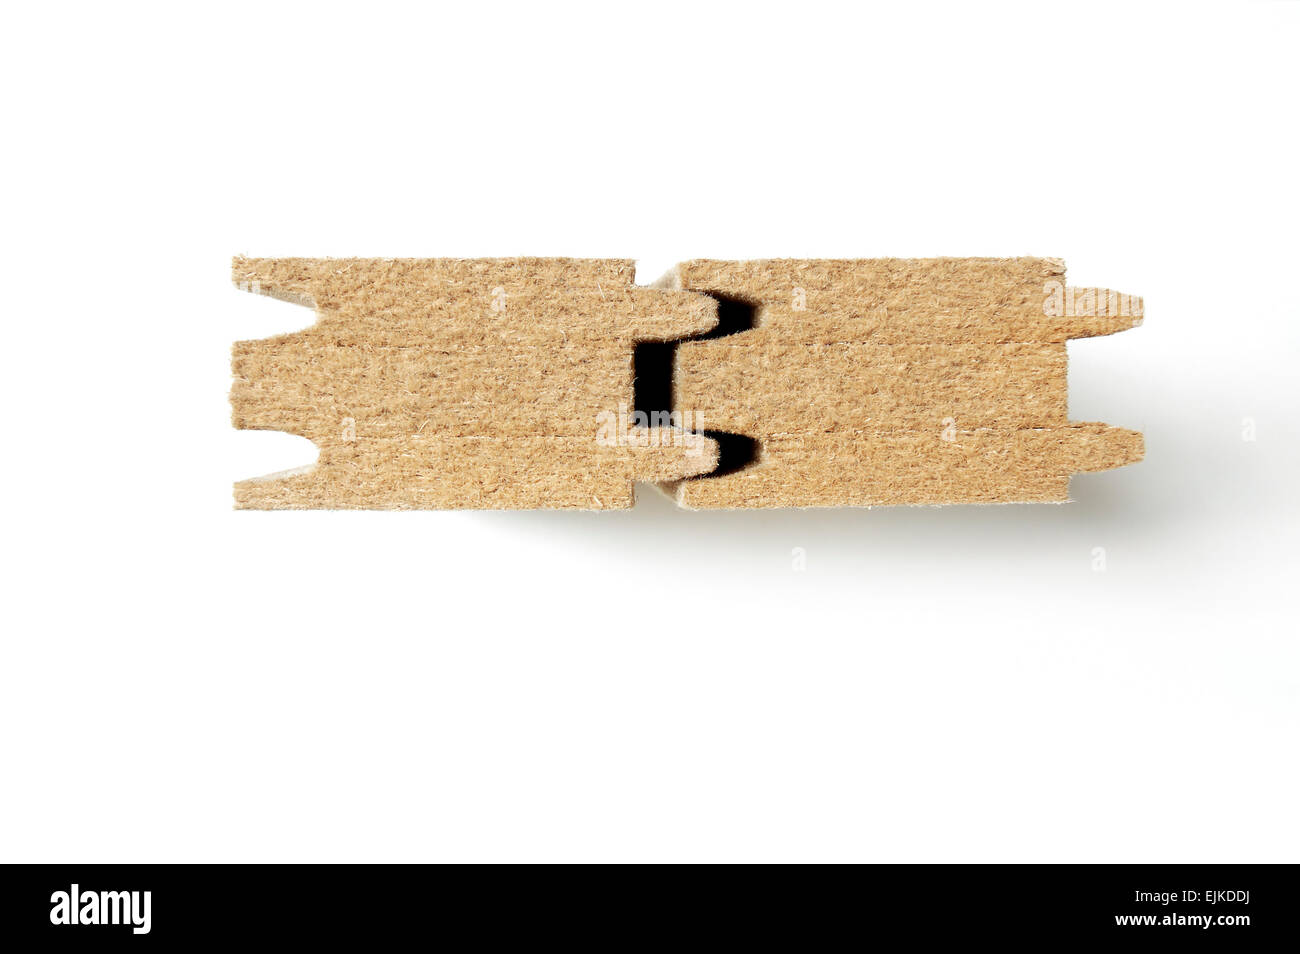 Wood fibre insulation boards - Stock Image